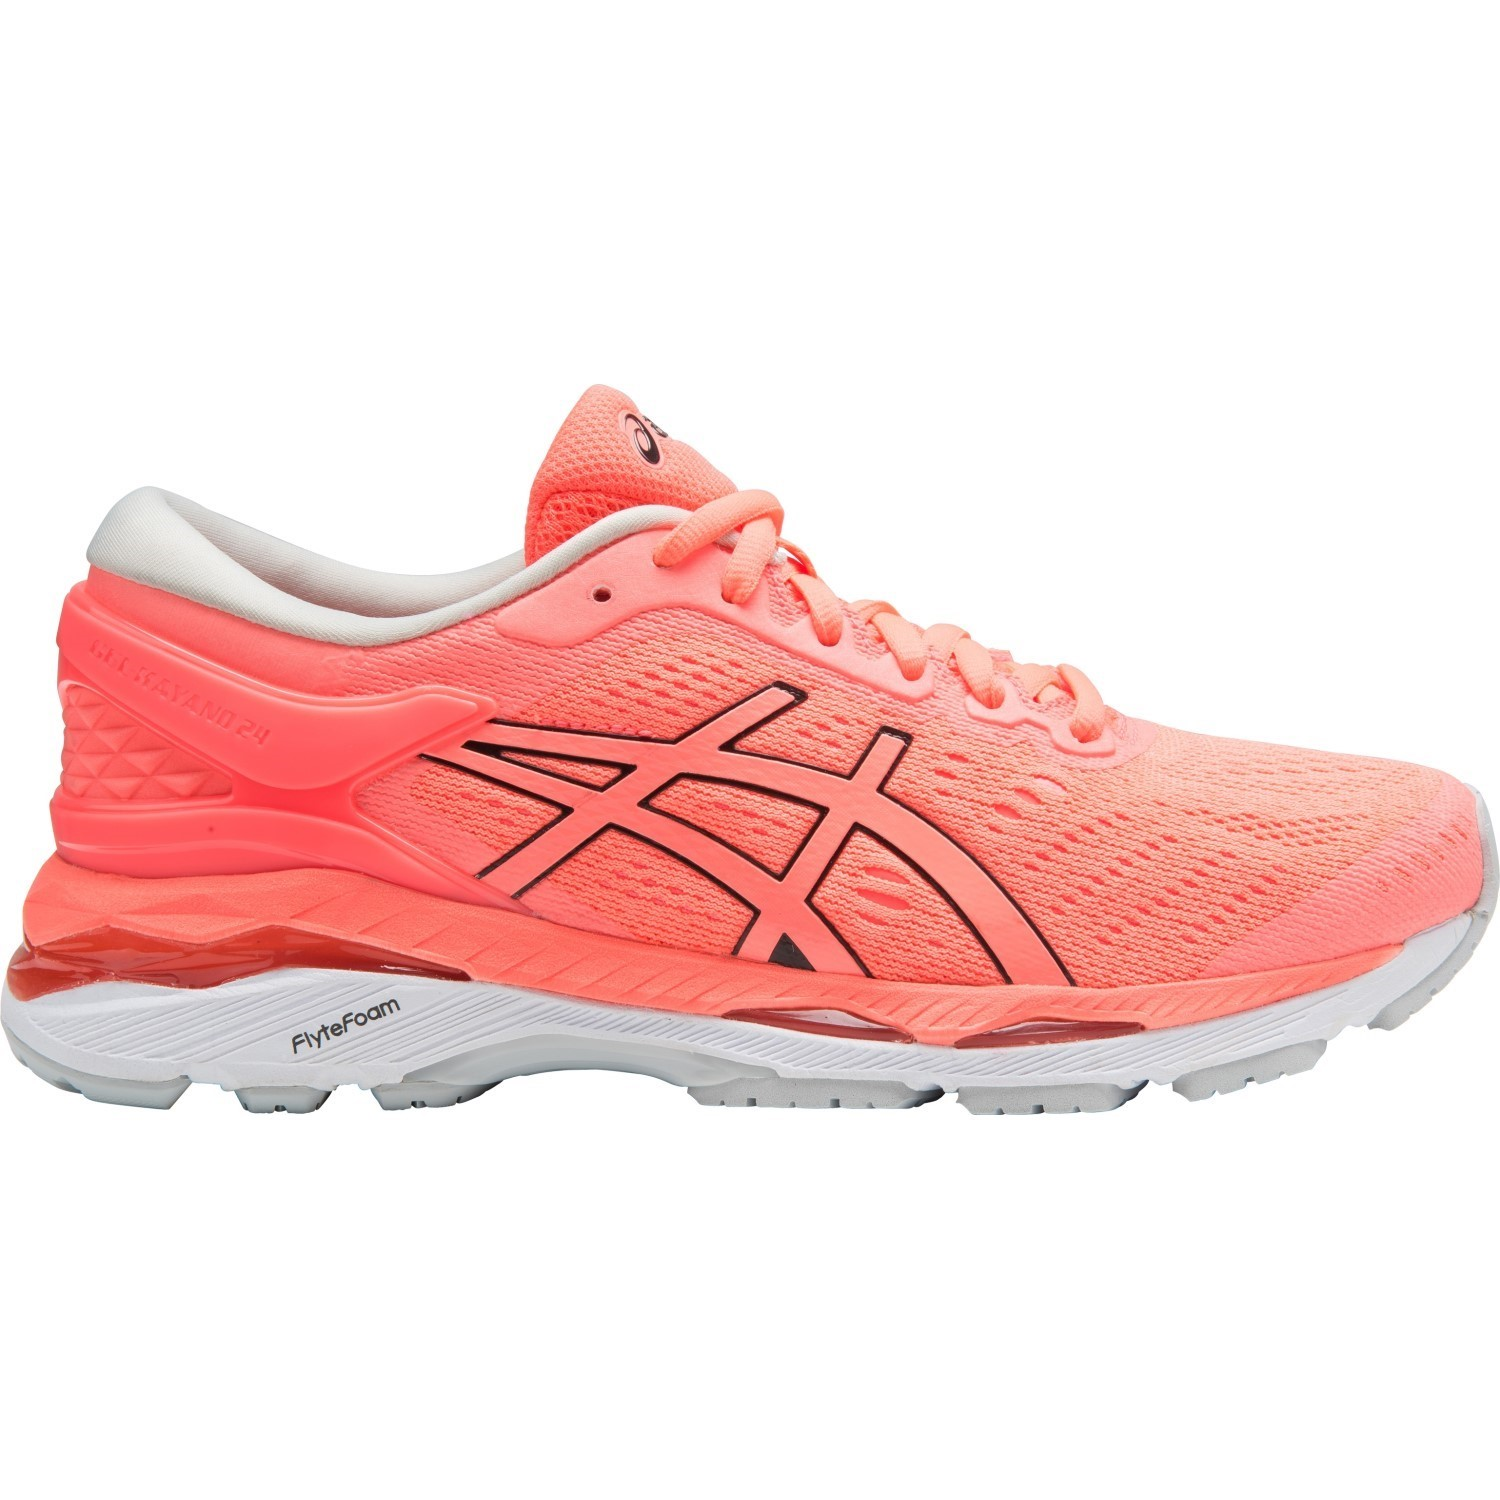 Asics Gel Kayano 24 - Womens Running Shoes - Flash Coral Black White ... ee05b7132